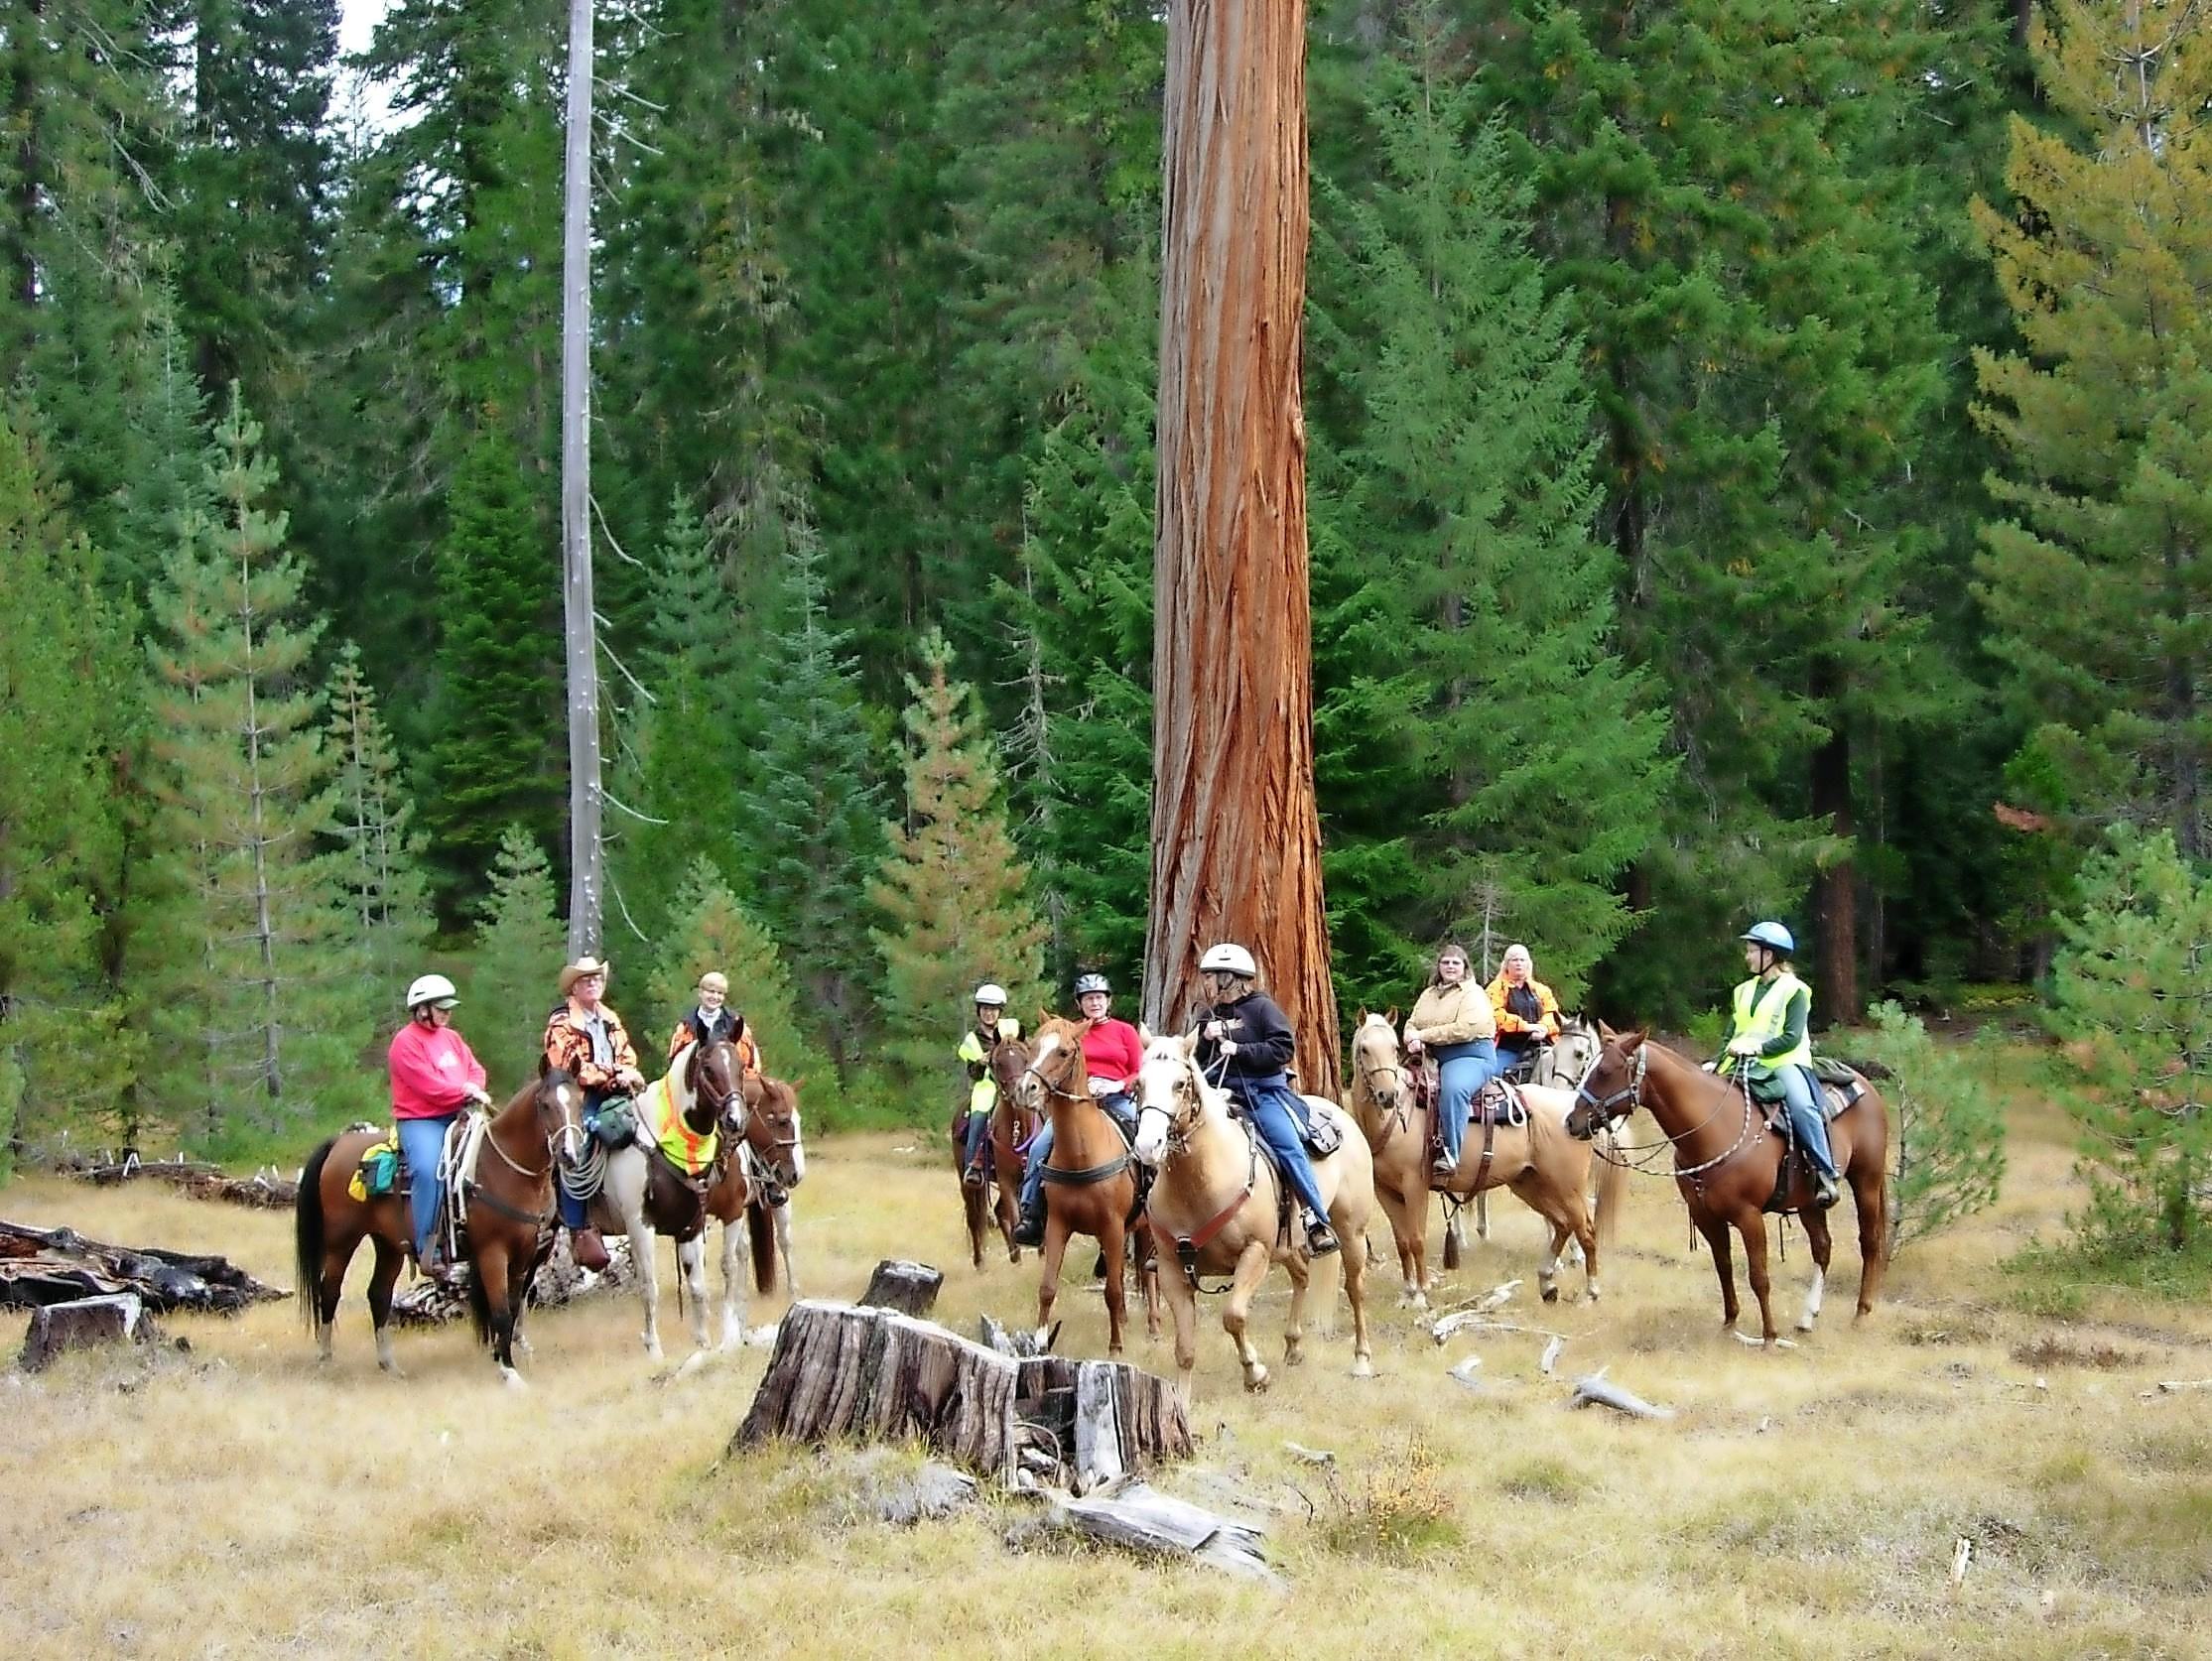 Club members stop in a meadow during a club ride along Muir Creek. - Photo by Debbie Davenport